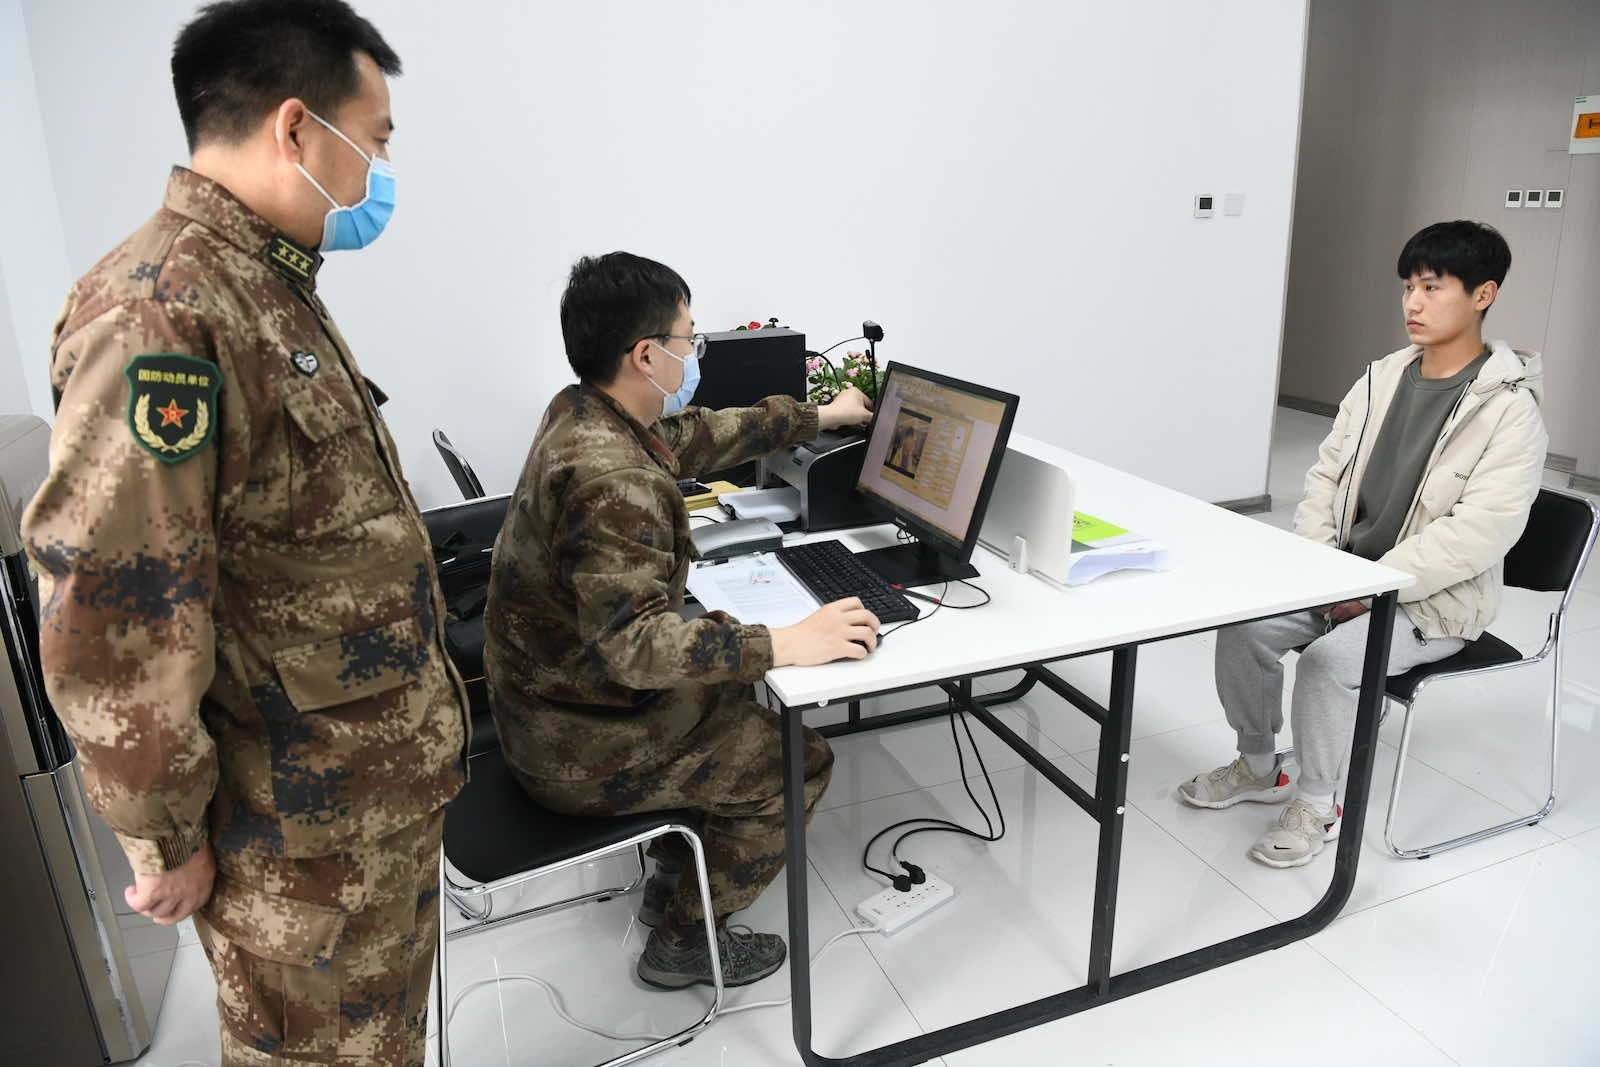 A physical examination station in Guangping county, Hebei province, China, in February (Costfoto/Barcroft Media via Getty Images)